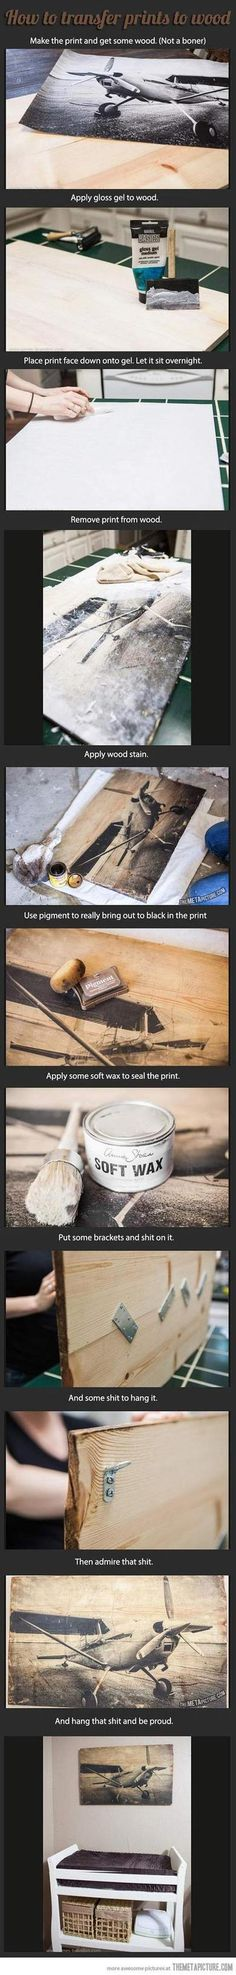 How to transfer prints to wood